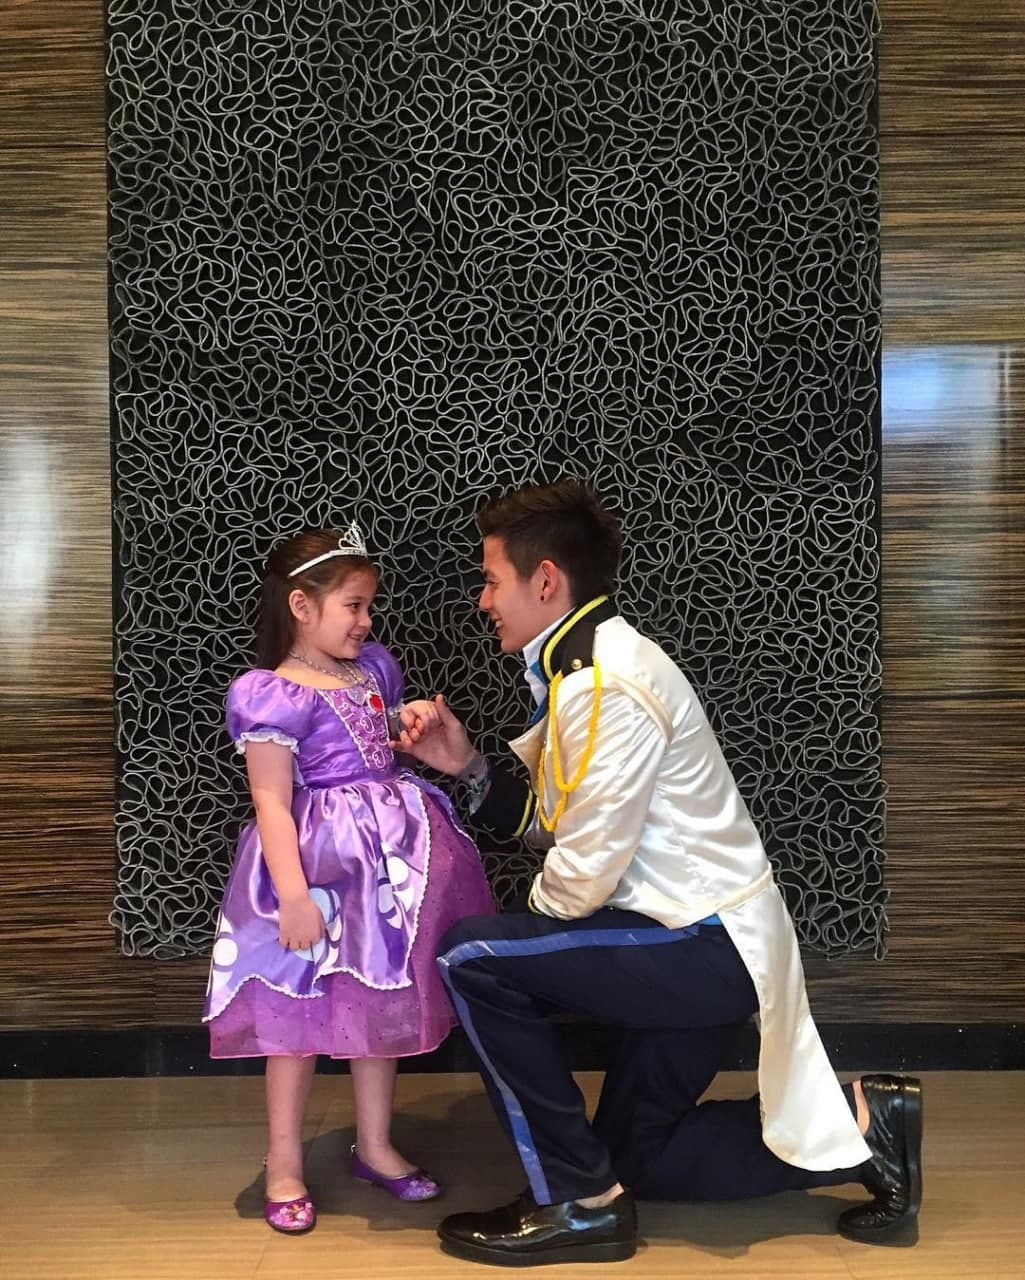 Ellie and her dad in costume